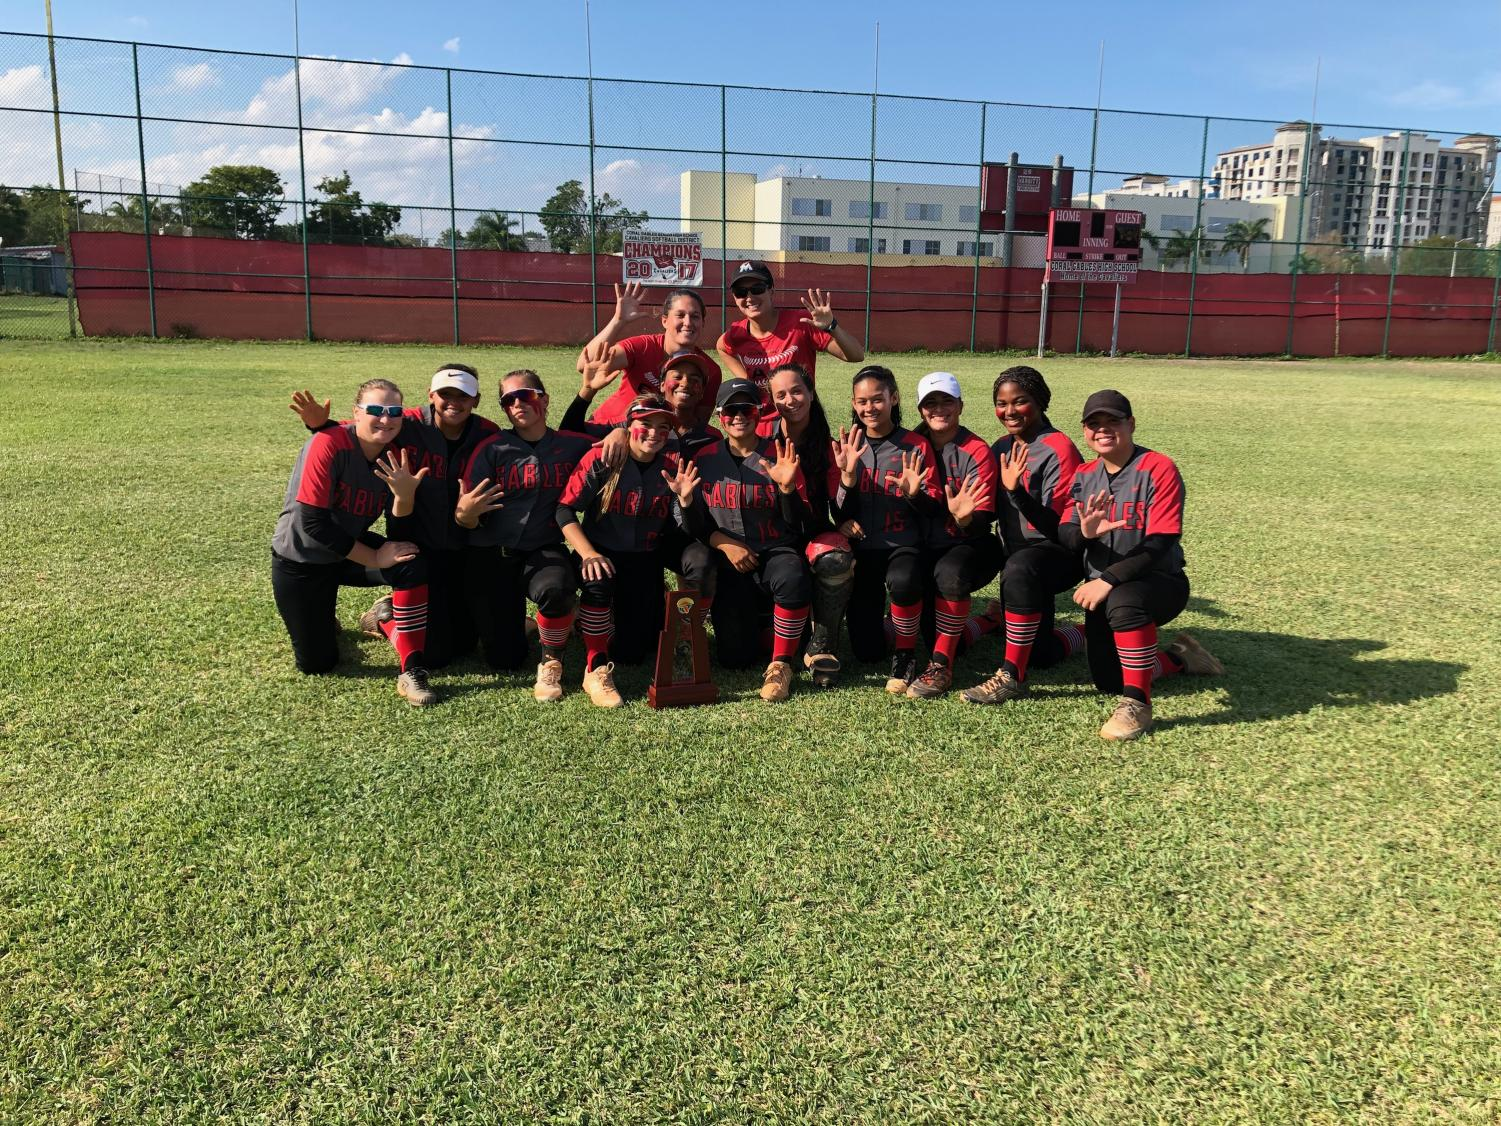 The cavalier softball team posing for a picture after finding out they won districts for the fifth year in a row.